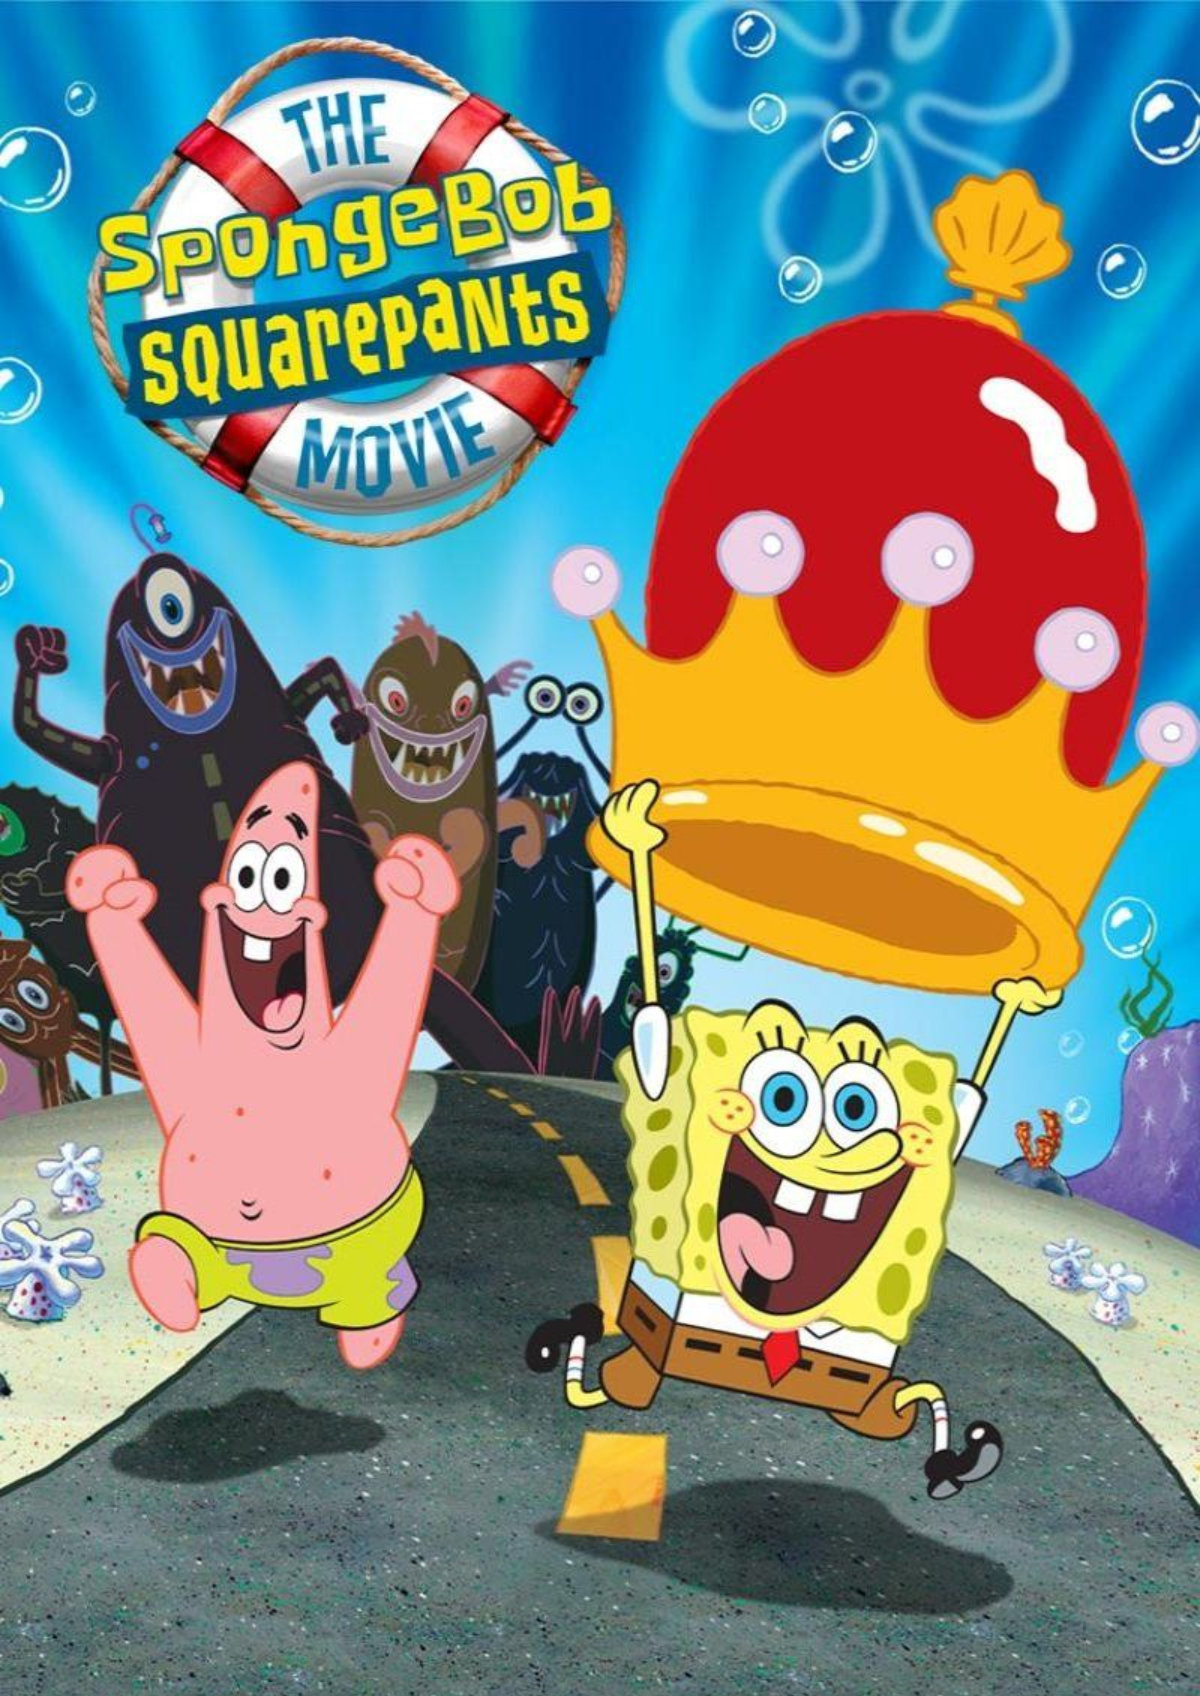 'The SpongeBob SquarePants Movie' movie poster